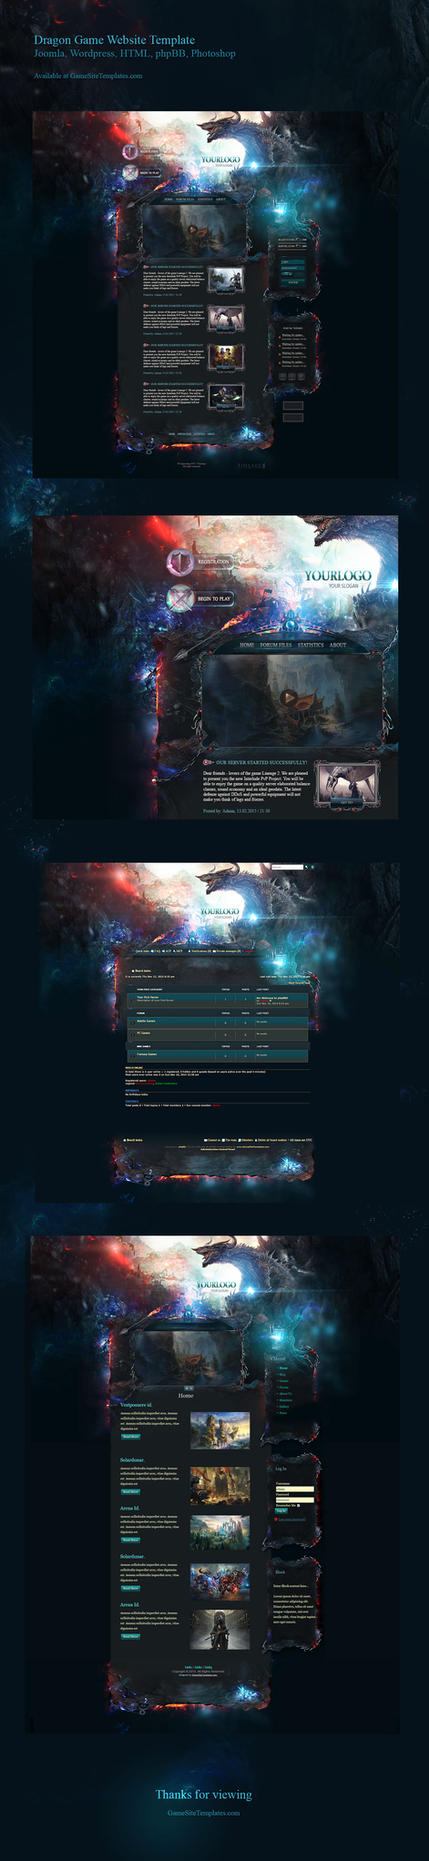 Dragon Game Website Template by karsten